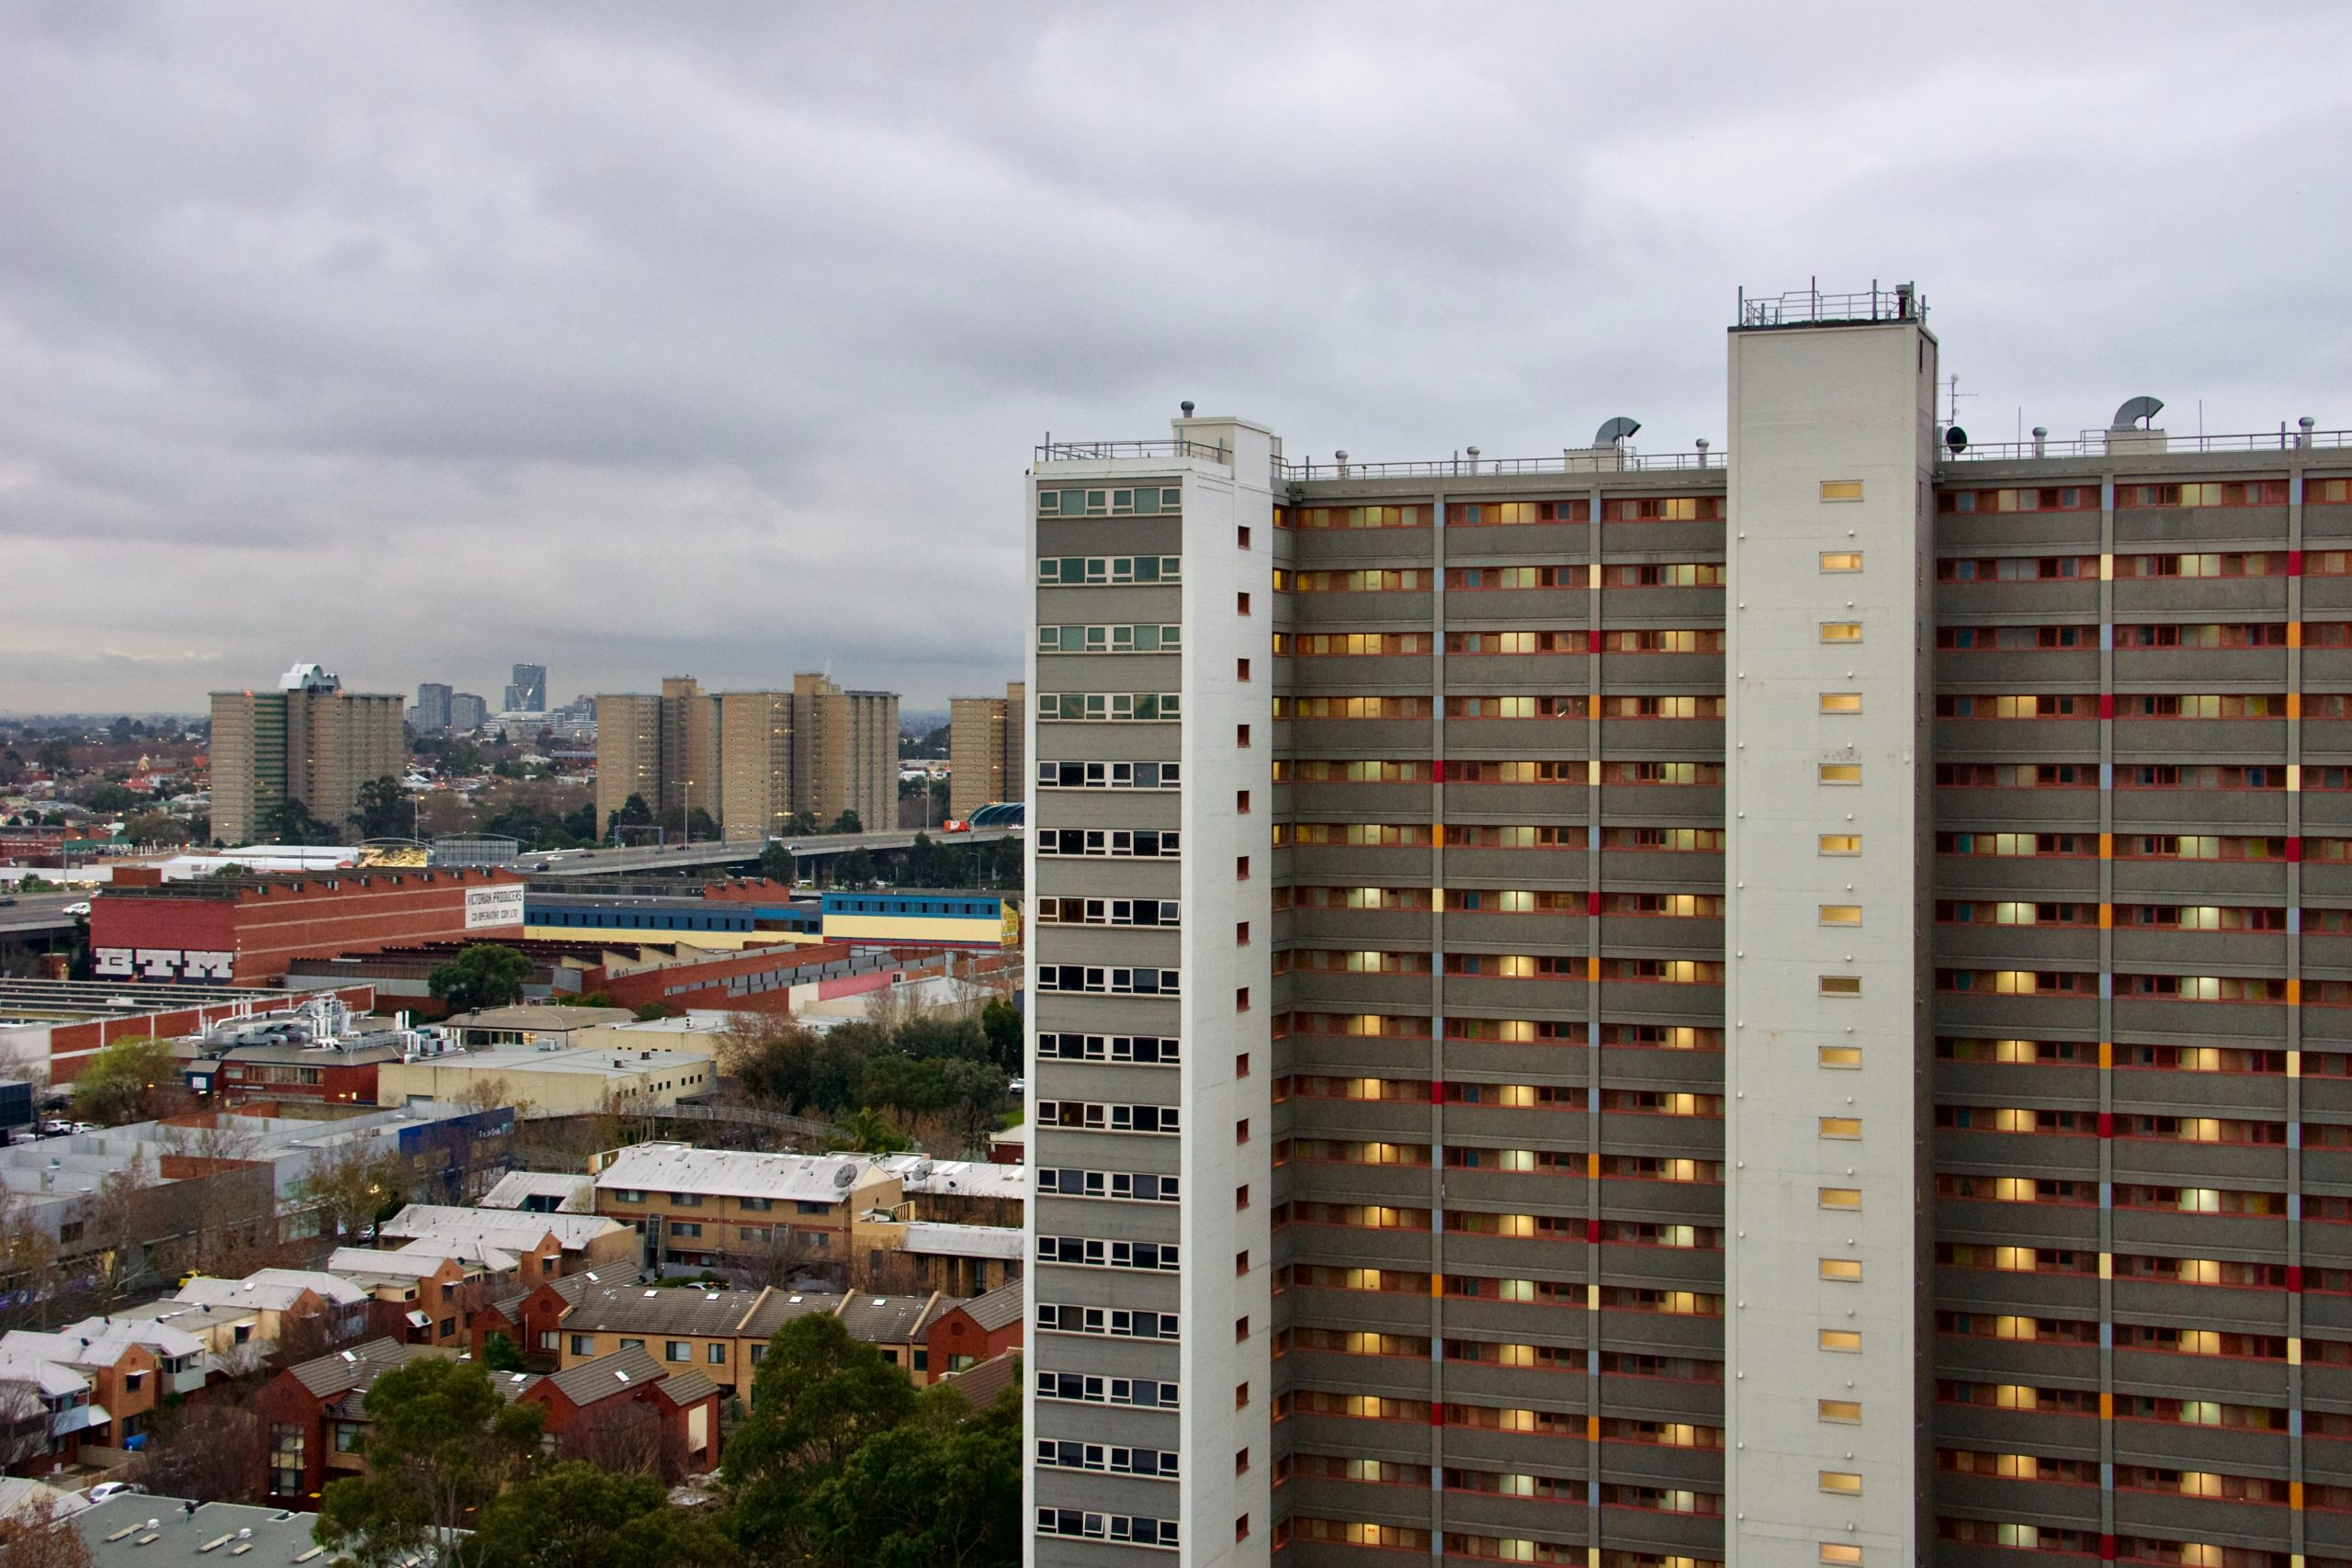 Ombudsman: 'Hard Lockdown' of Melbourne Public Housing Estates Violated Human Rights